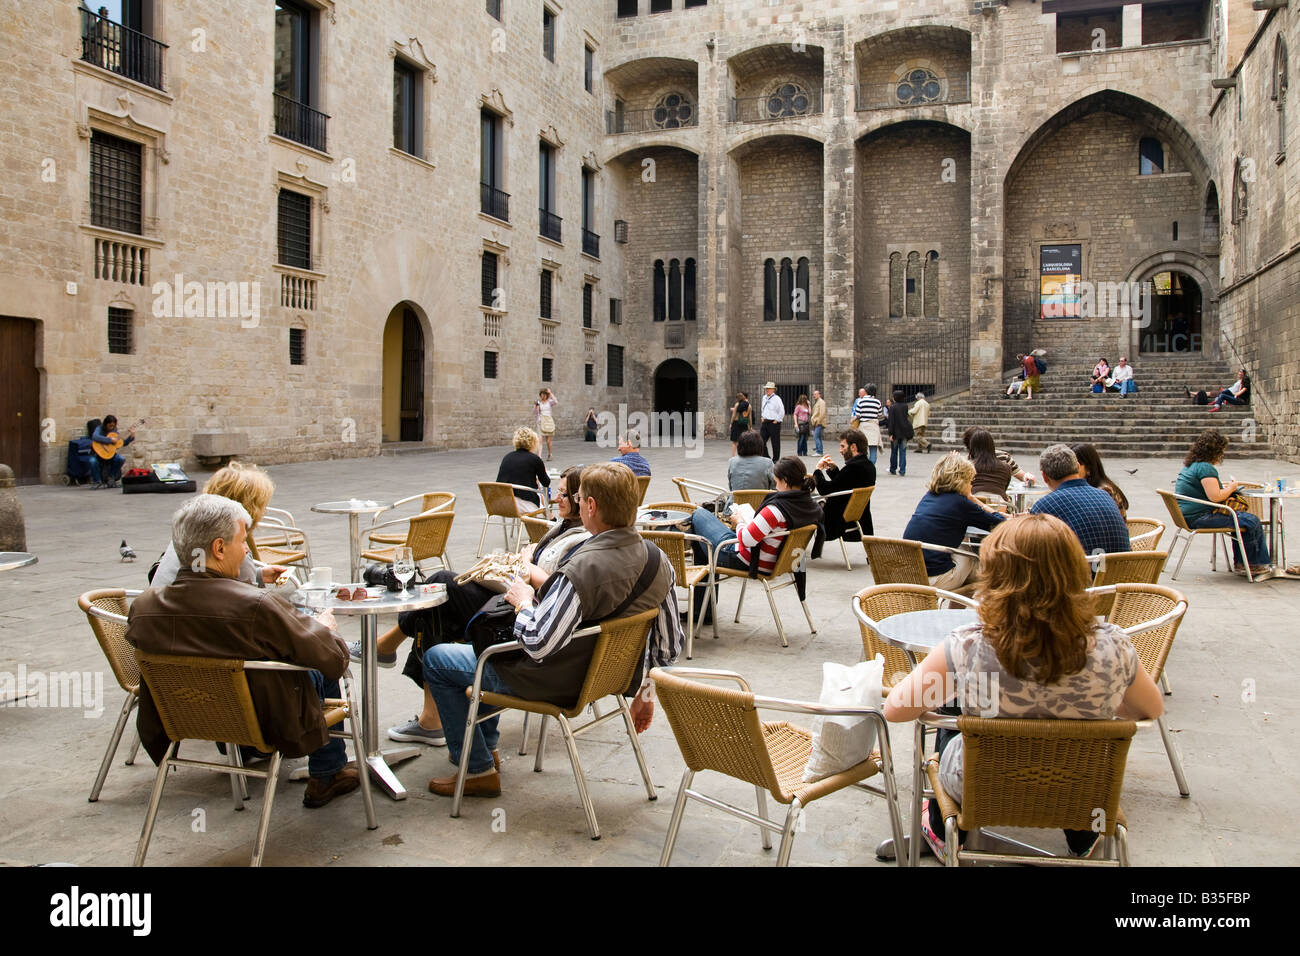 SPAIN Barcelona Couples sit at tables while female acoustic guitar playing in Placa del Rei plaza King s Square - Stock Image